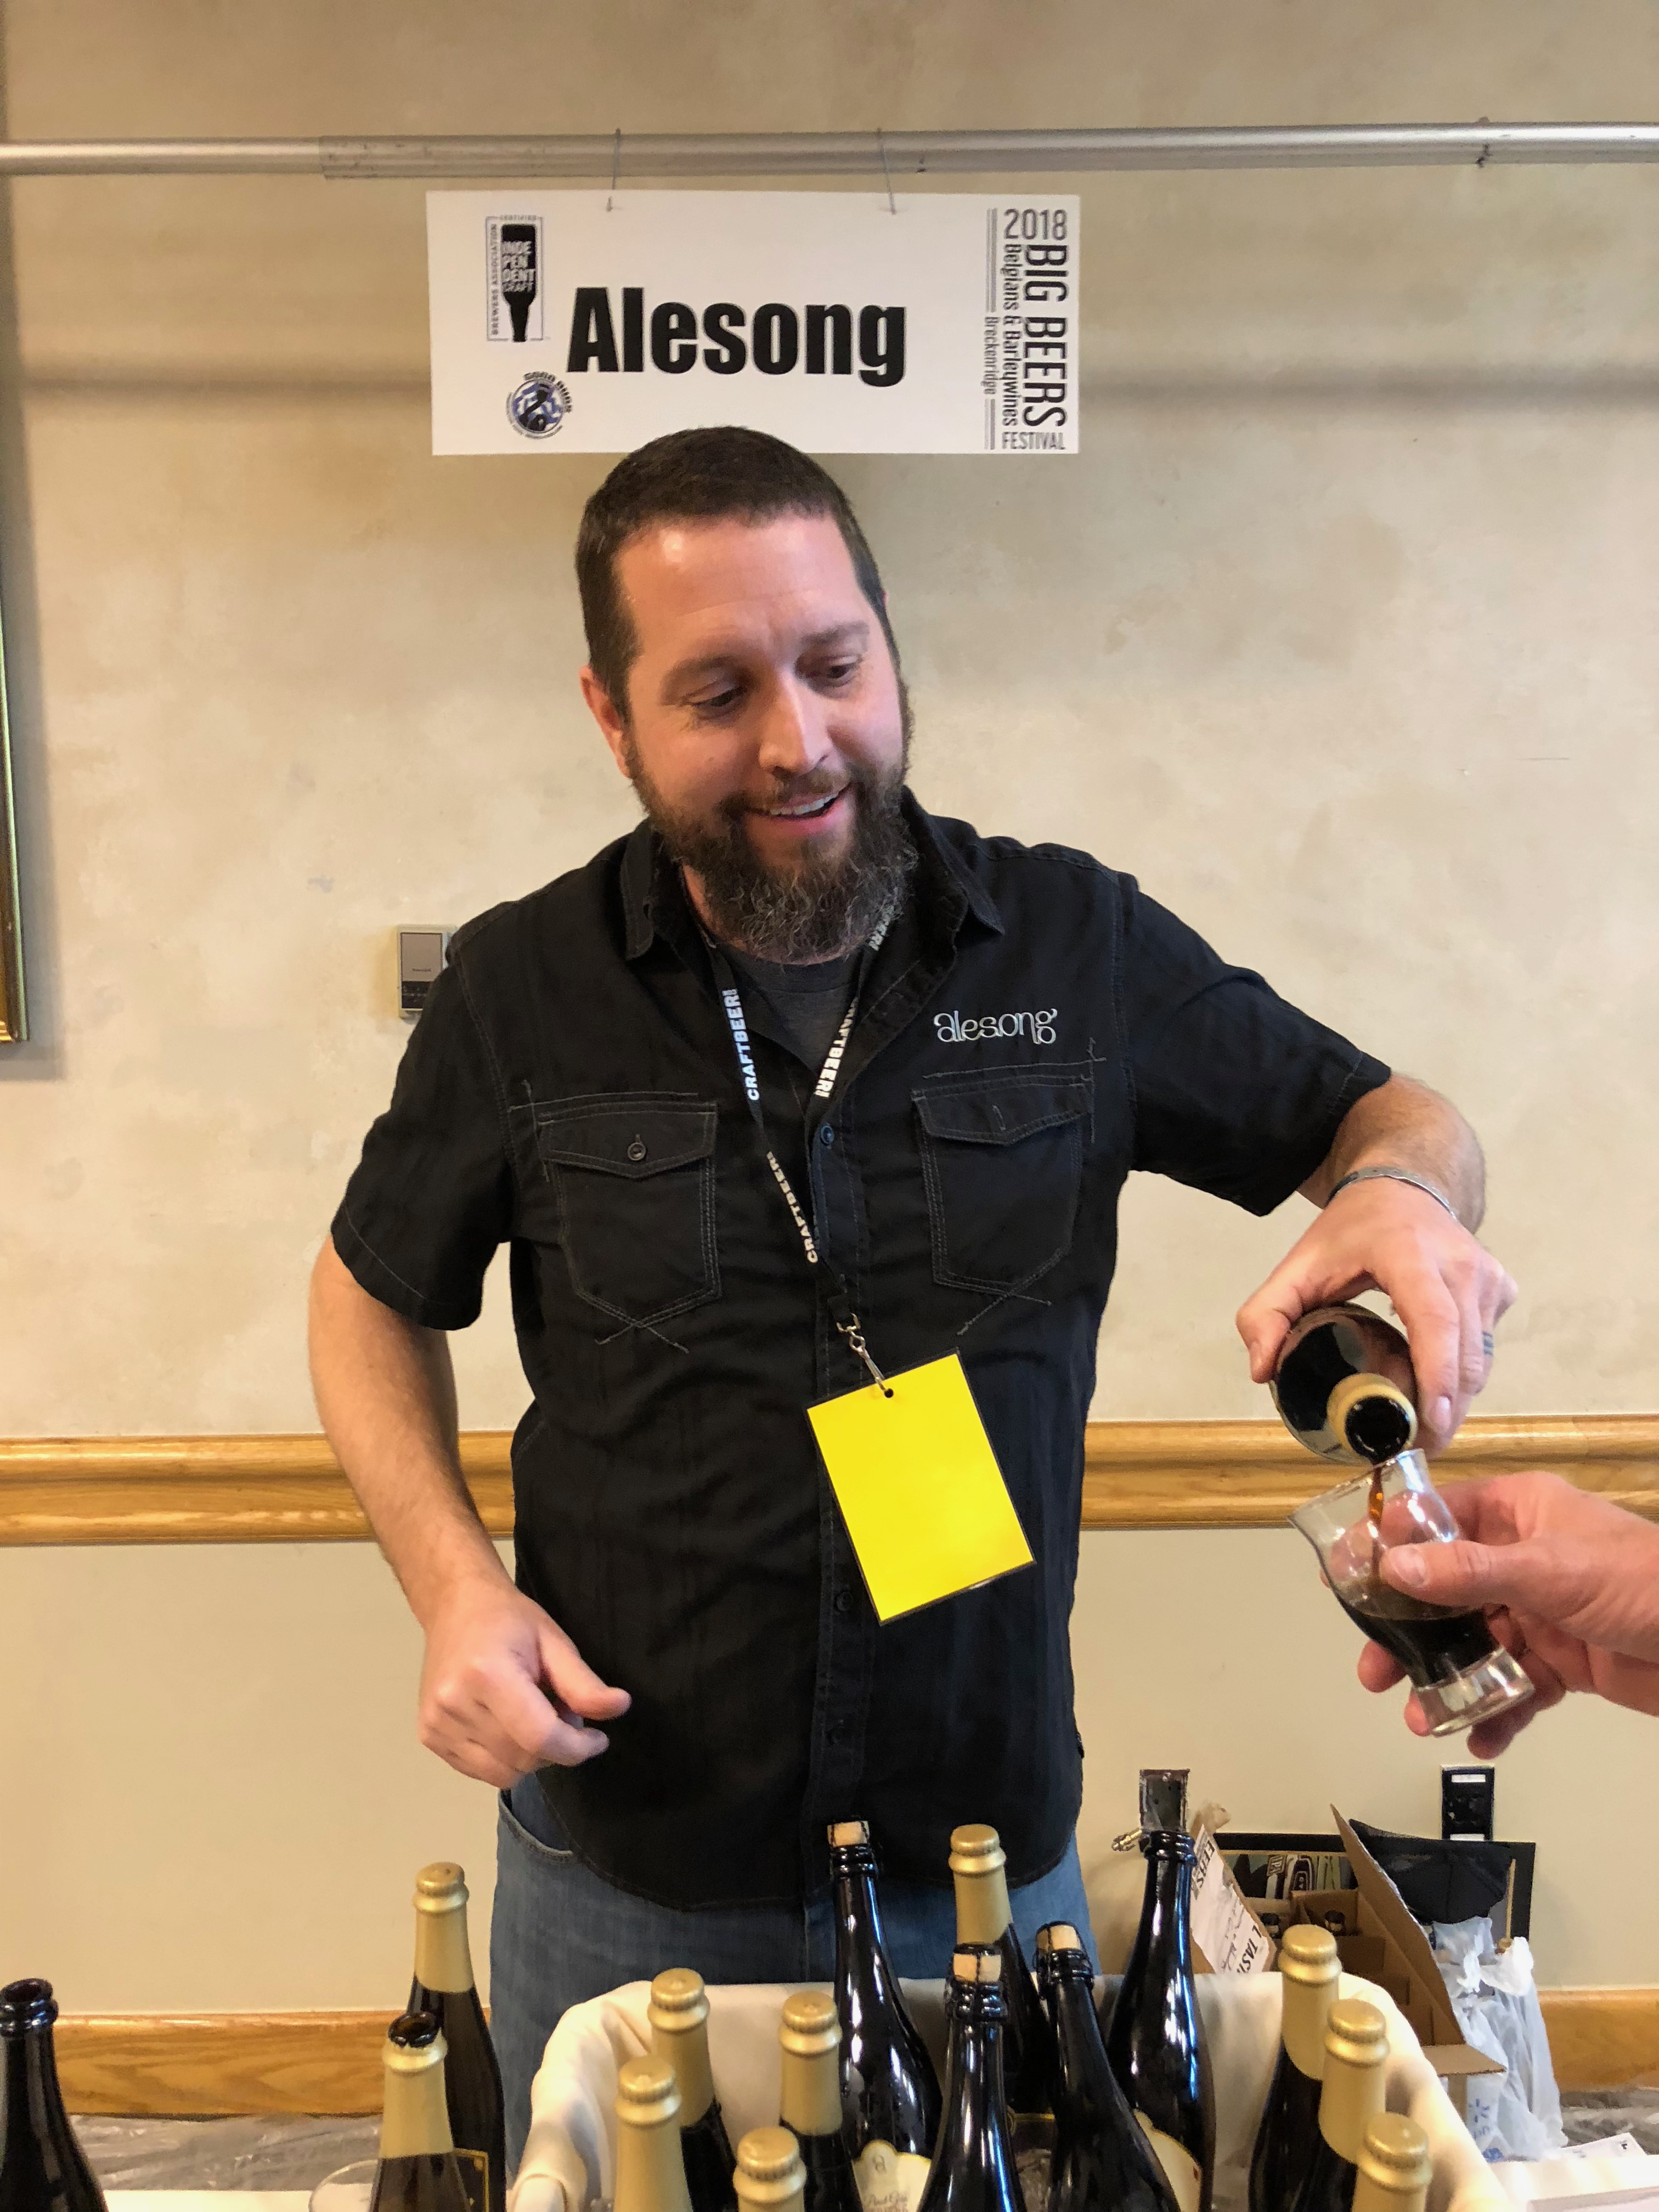 Matt Van Wyk from Alesong Brewing & Blending pouring a sneak peek of Four Pirates in Breckenridge, Colorado during the 2018 Big Beers, Belgians and Barleywine Festival.